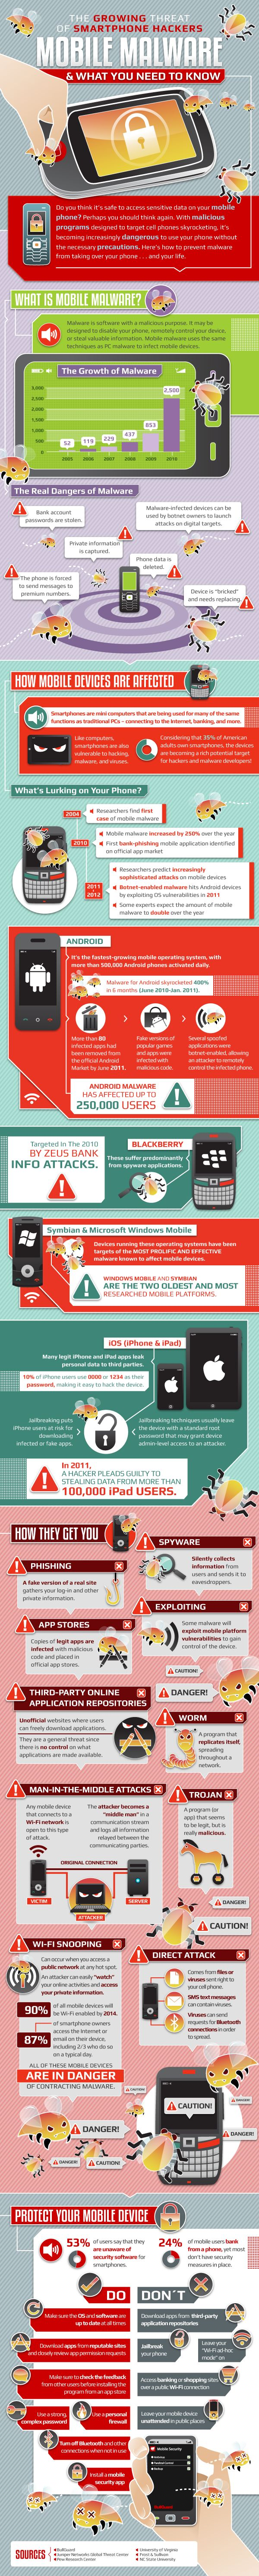 Did you know Smartphones are the most popular new target for threats such as malware and data theft? Our illustrators have been busy coming up with this snazzy infographic – loads of interesting info in there and some stats that might surprise you!